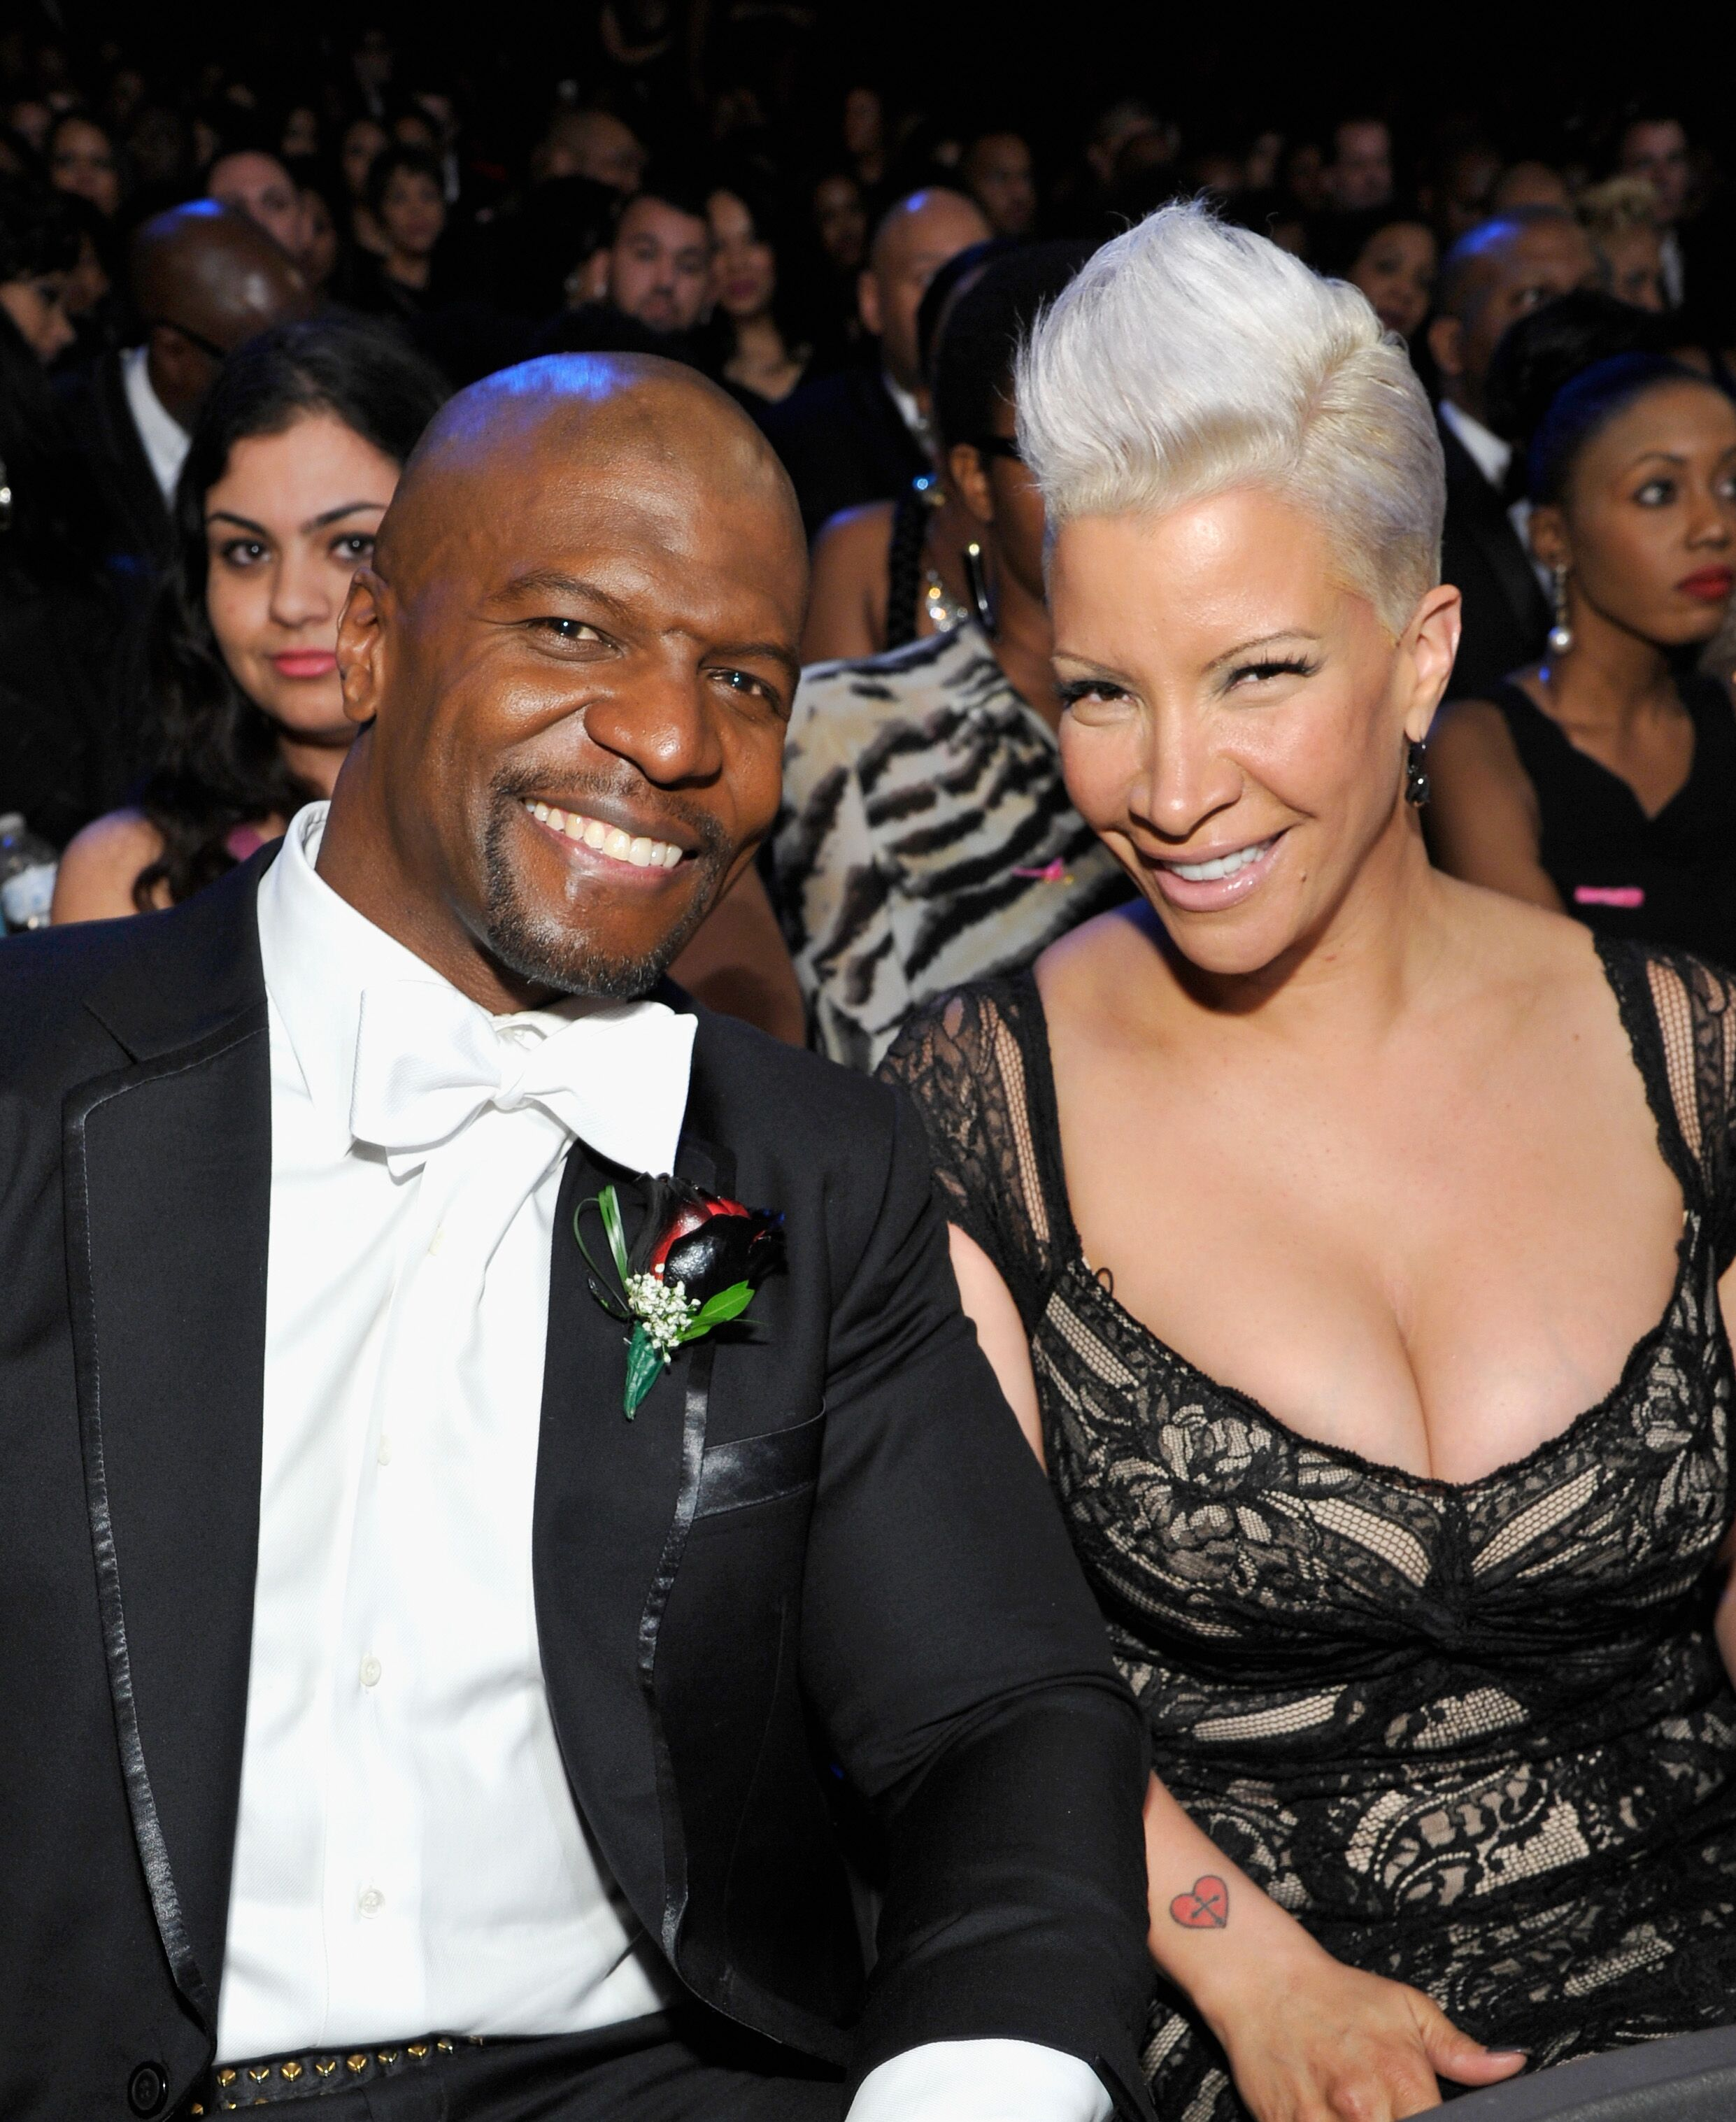 Terry Crews (L) and wife Rebecca King-Crews attends the 45th NAACP Image Awards presented by TV One at Pasadena Civic Auditorium. | Source: Getty Images